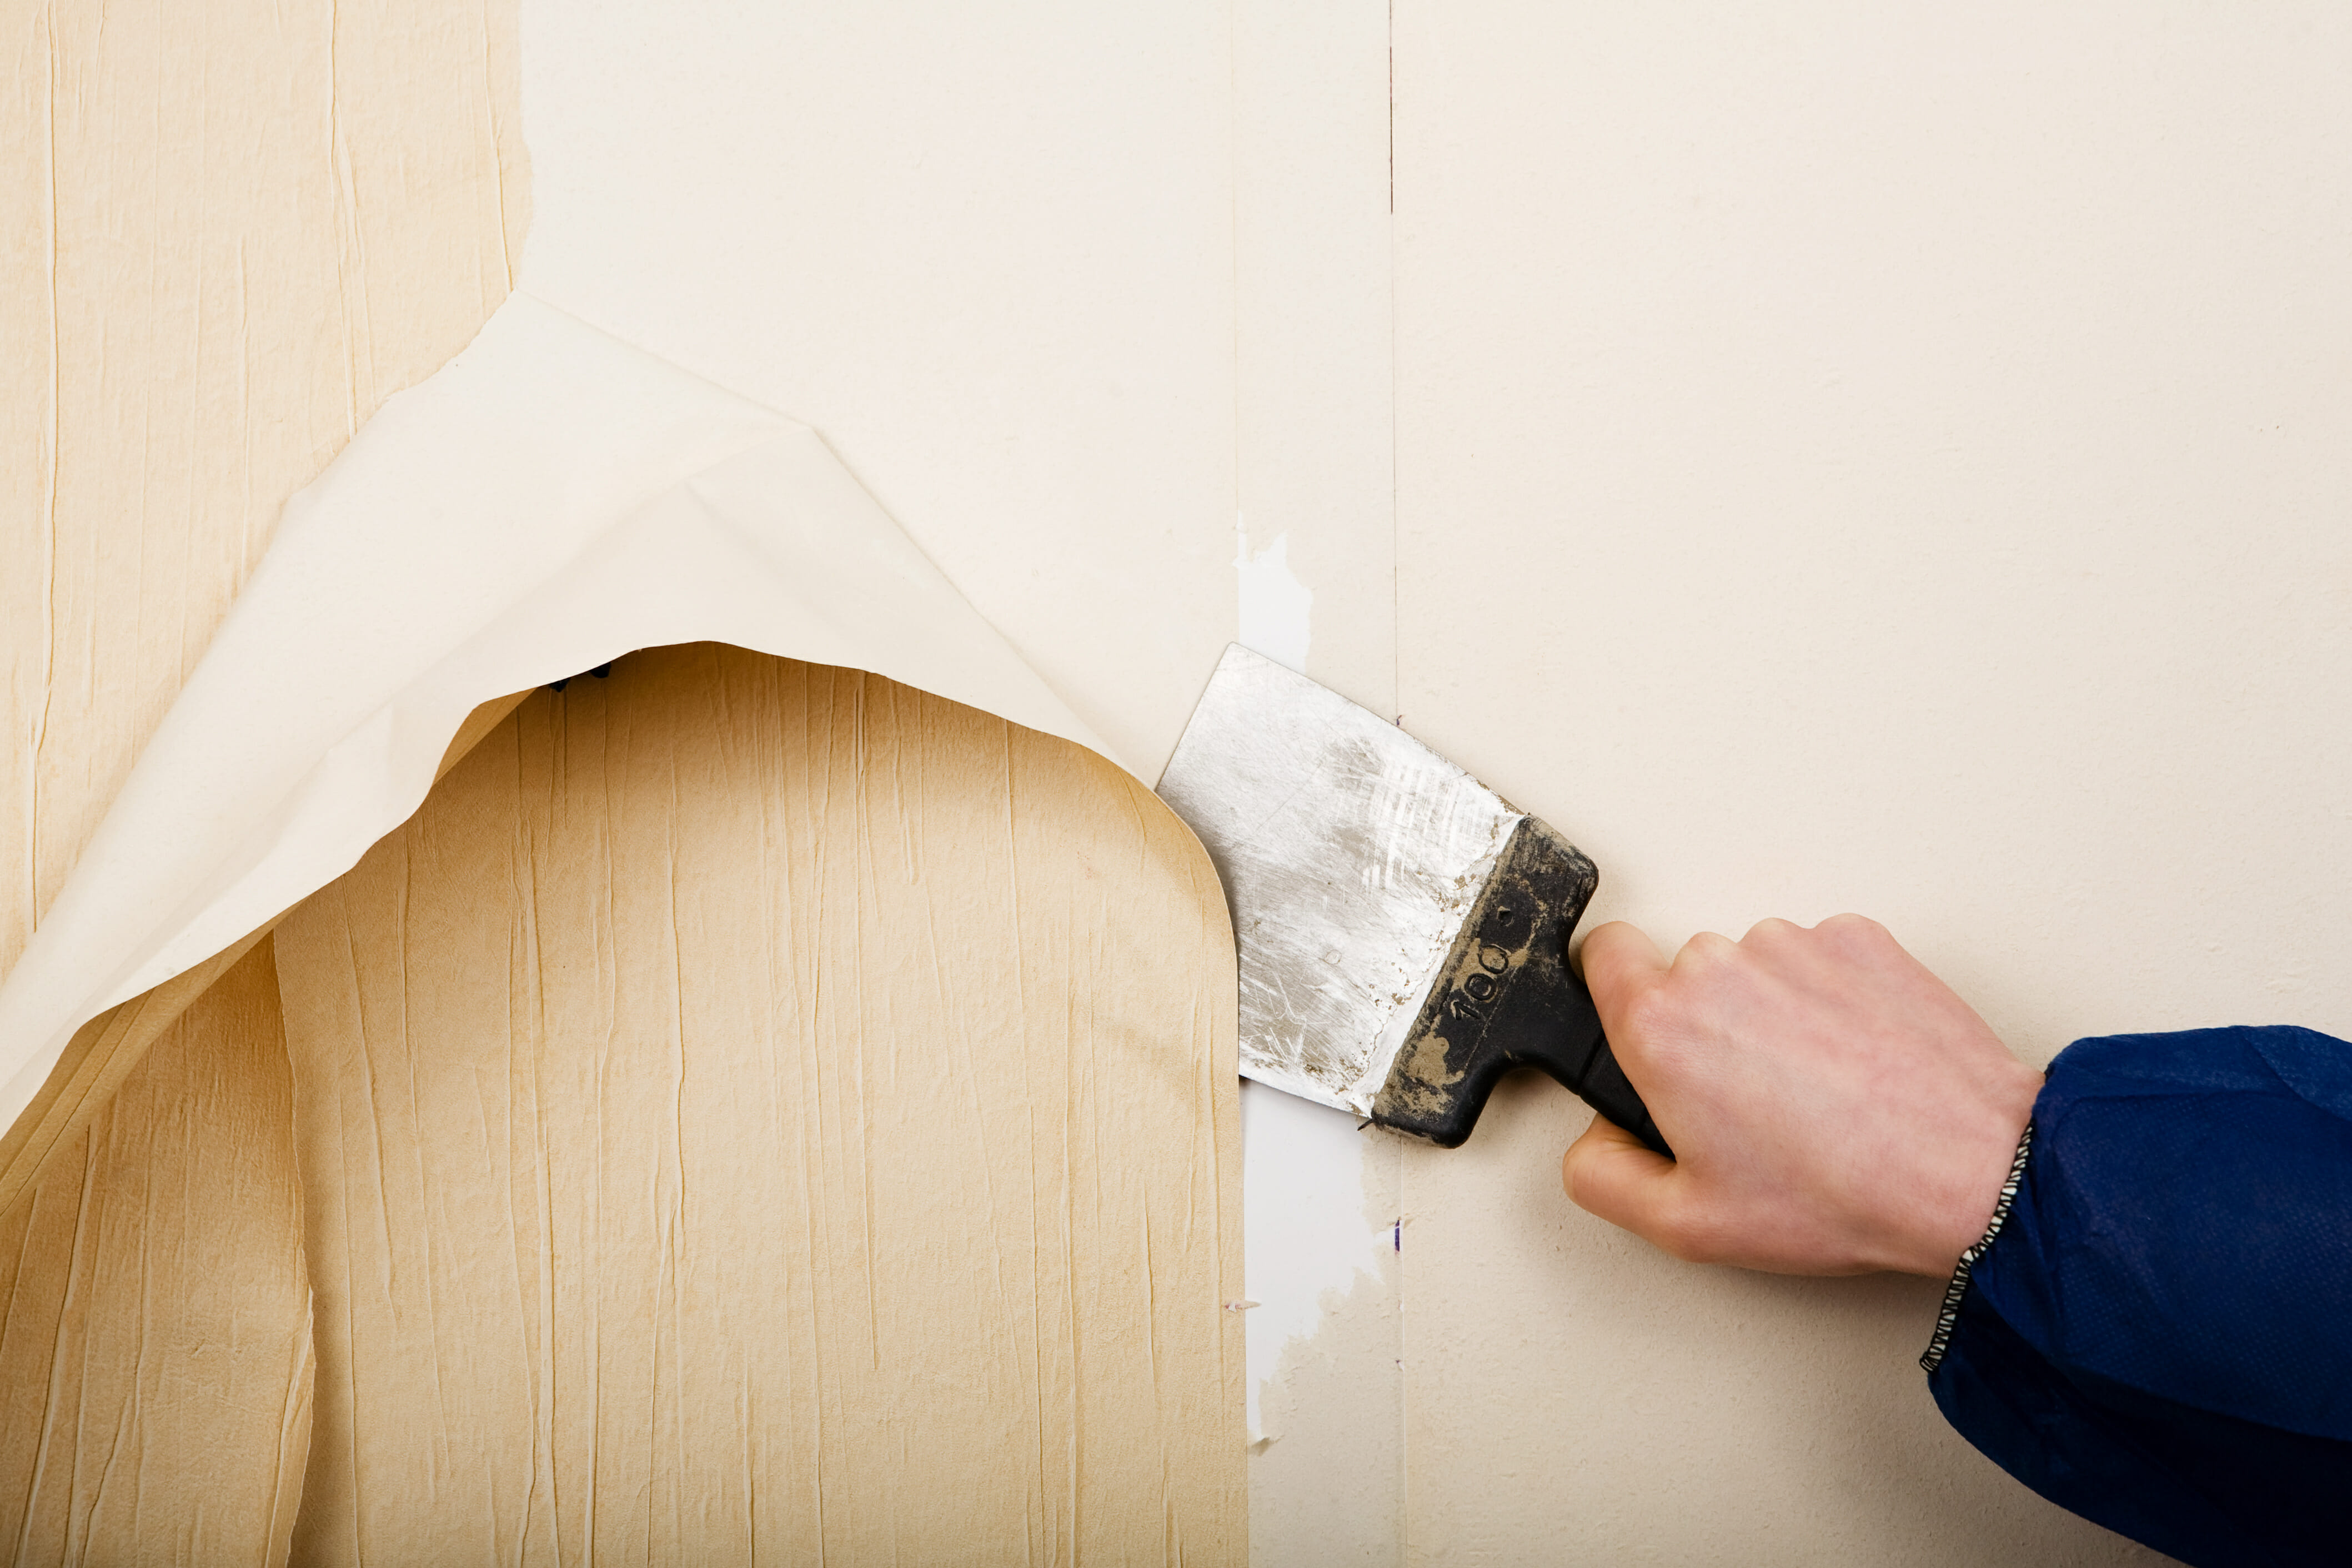 Stripping wallpaper the easy way (if there is such a thing!)